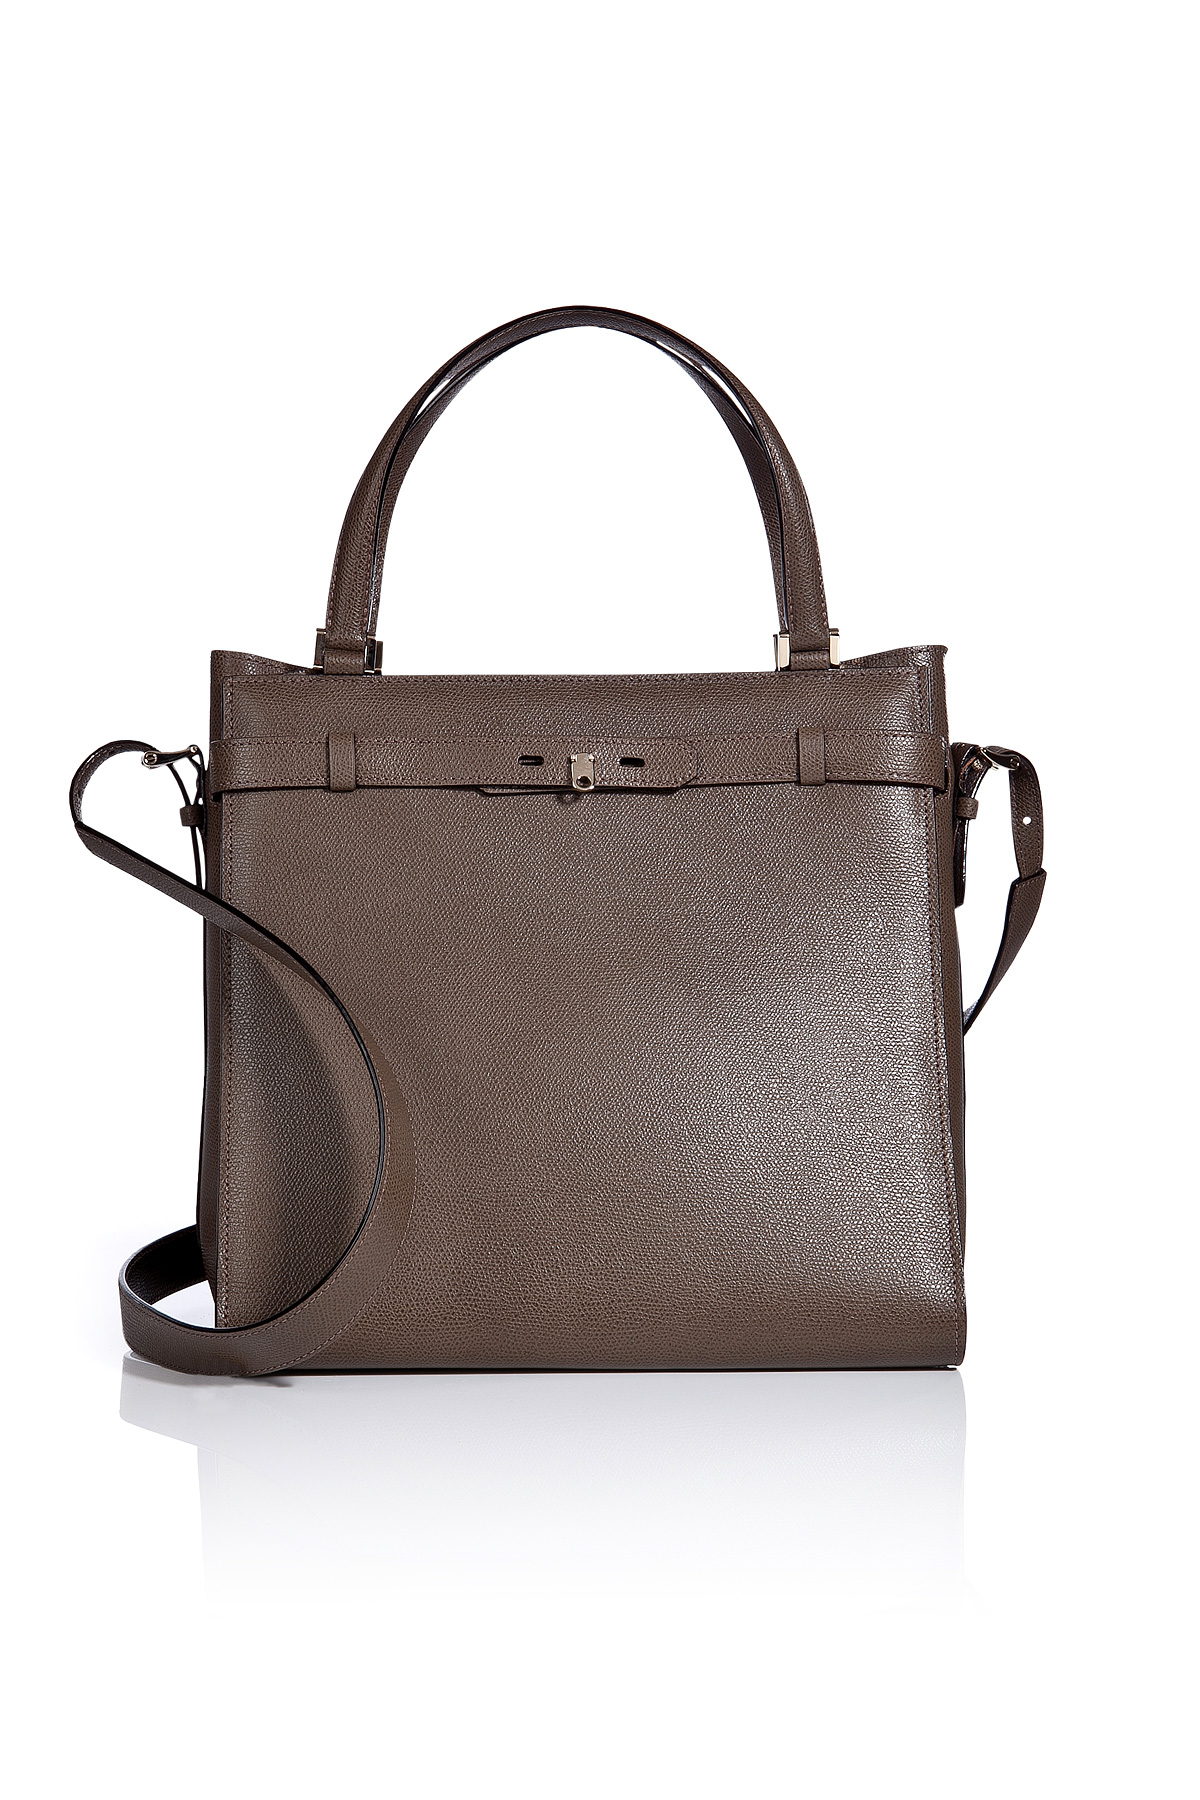 B Cube lyst - valextra leather large b-cube handbag in gray